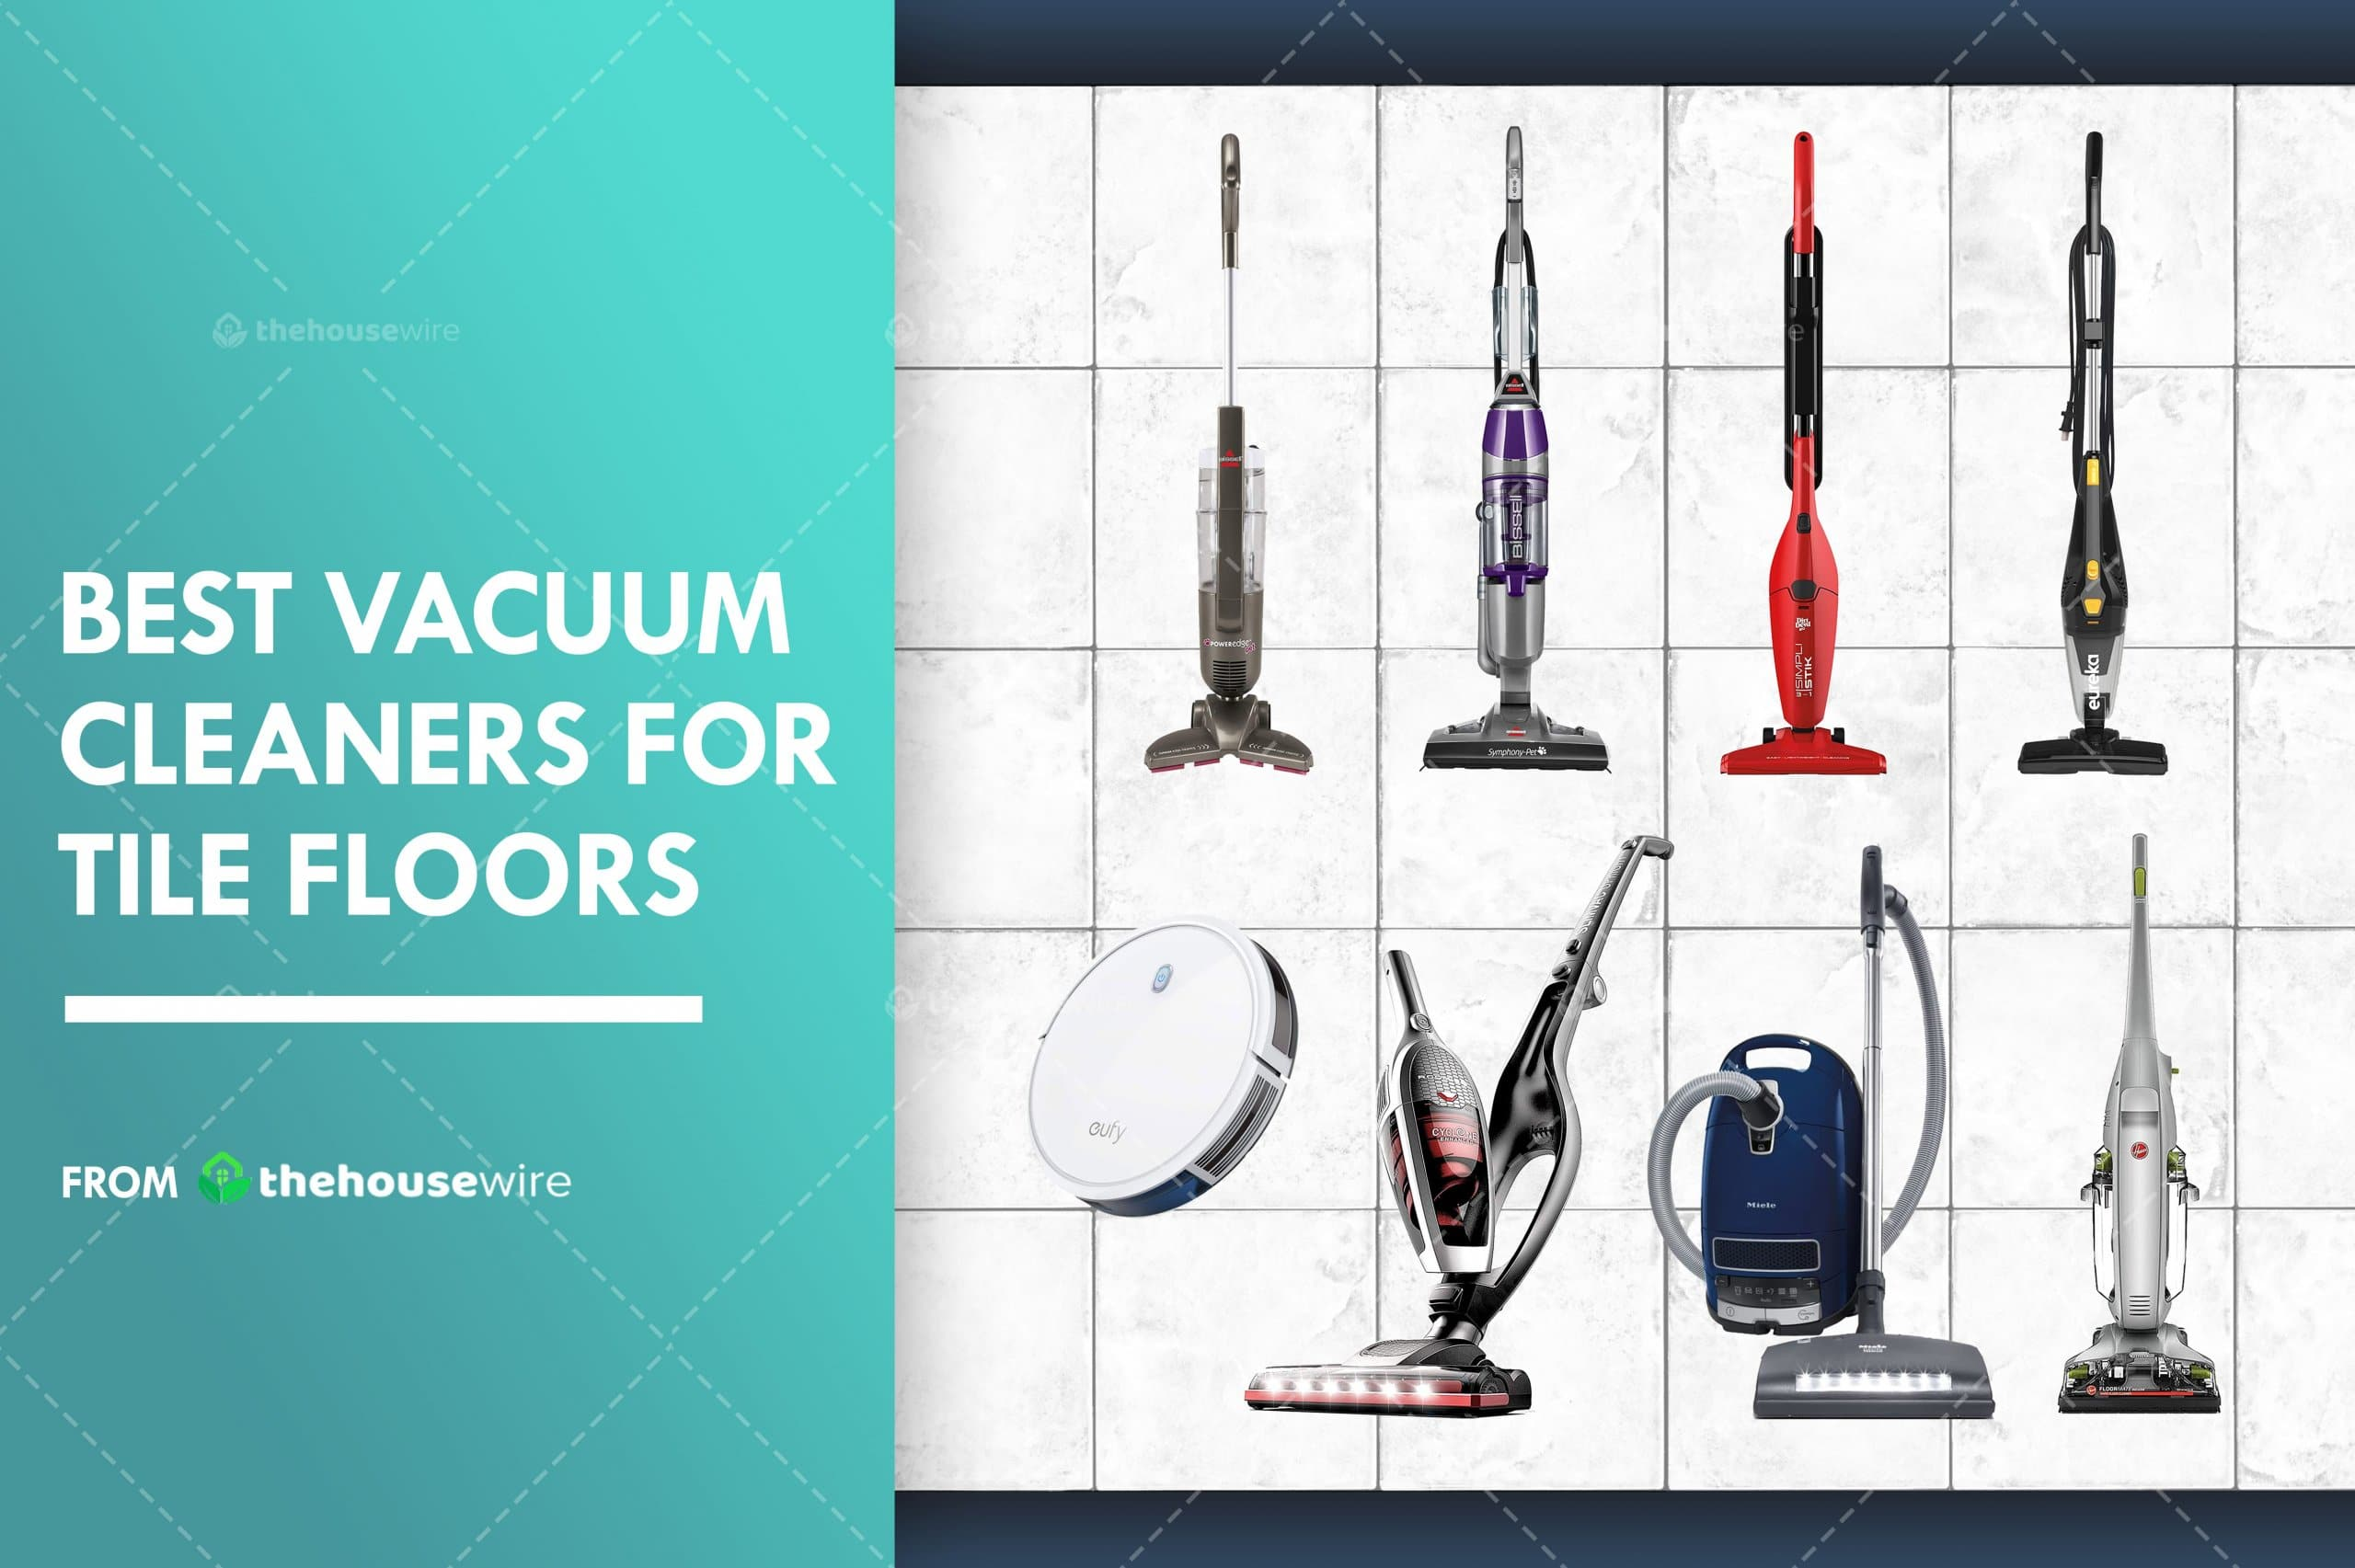 best-vacuum-cleaners-for-tile-floors-min